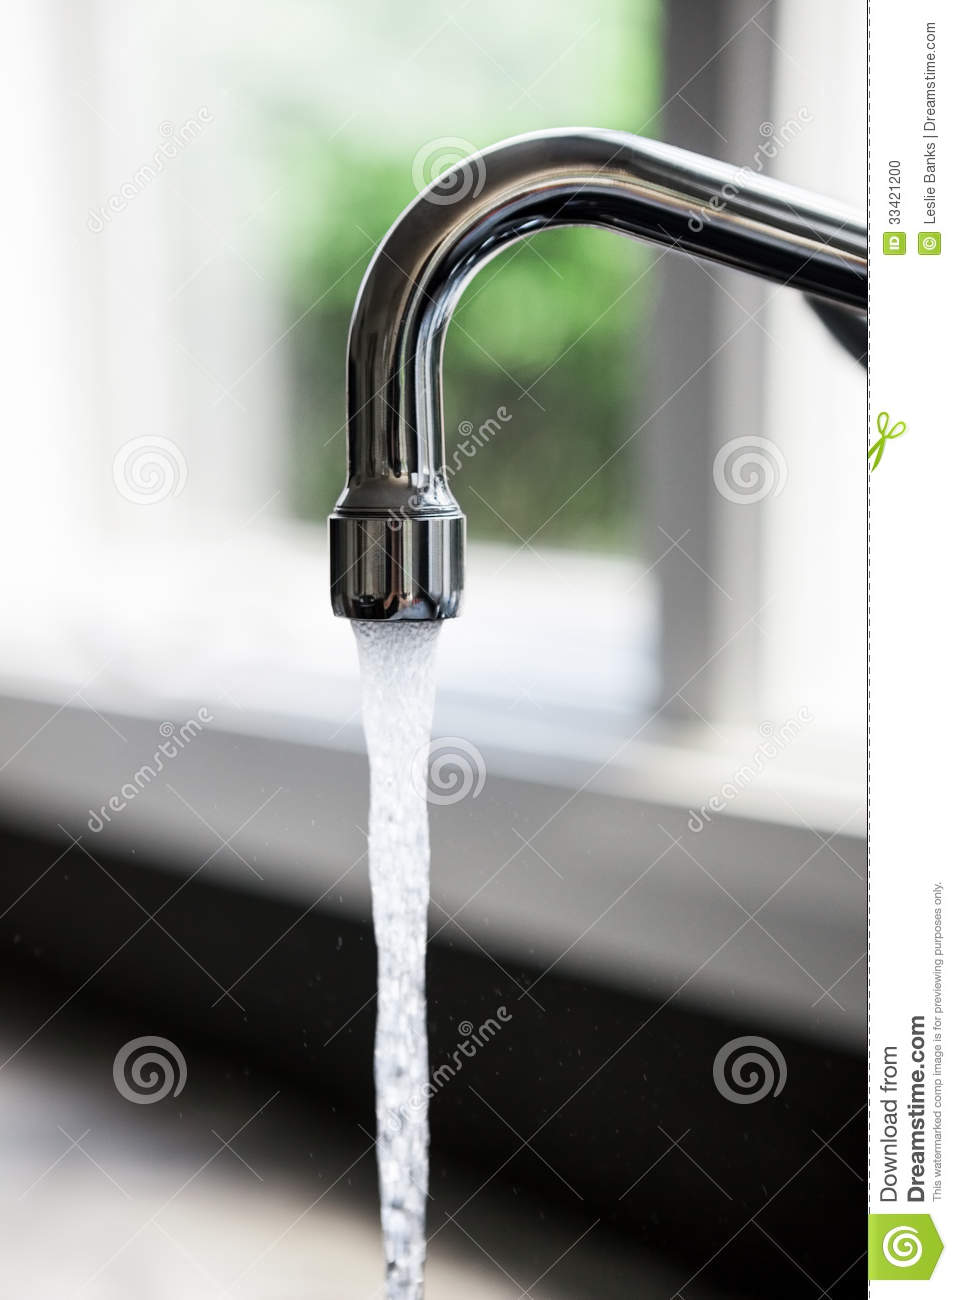 Faucet With Running Water Stock Photo Image 33421200